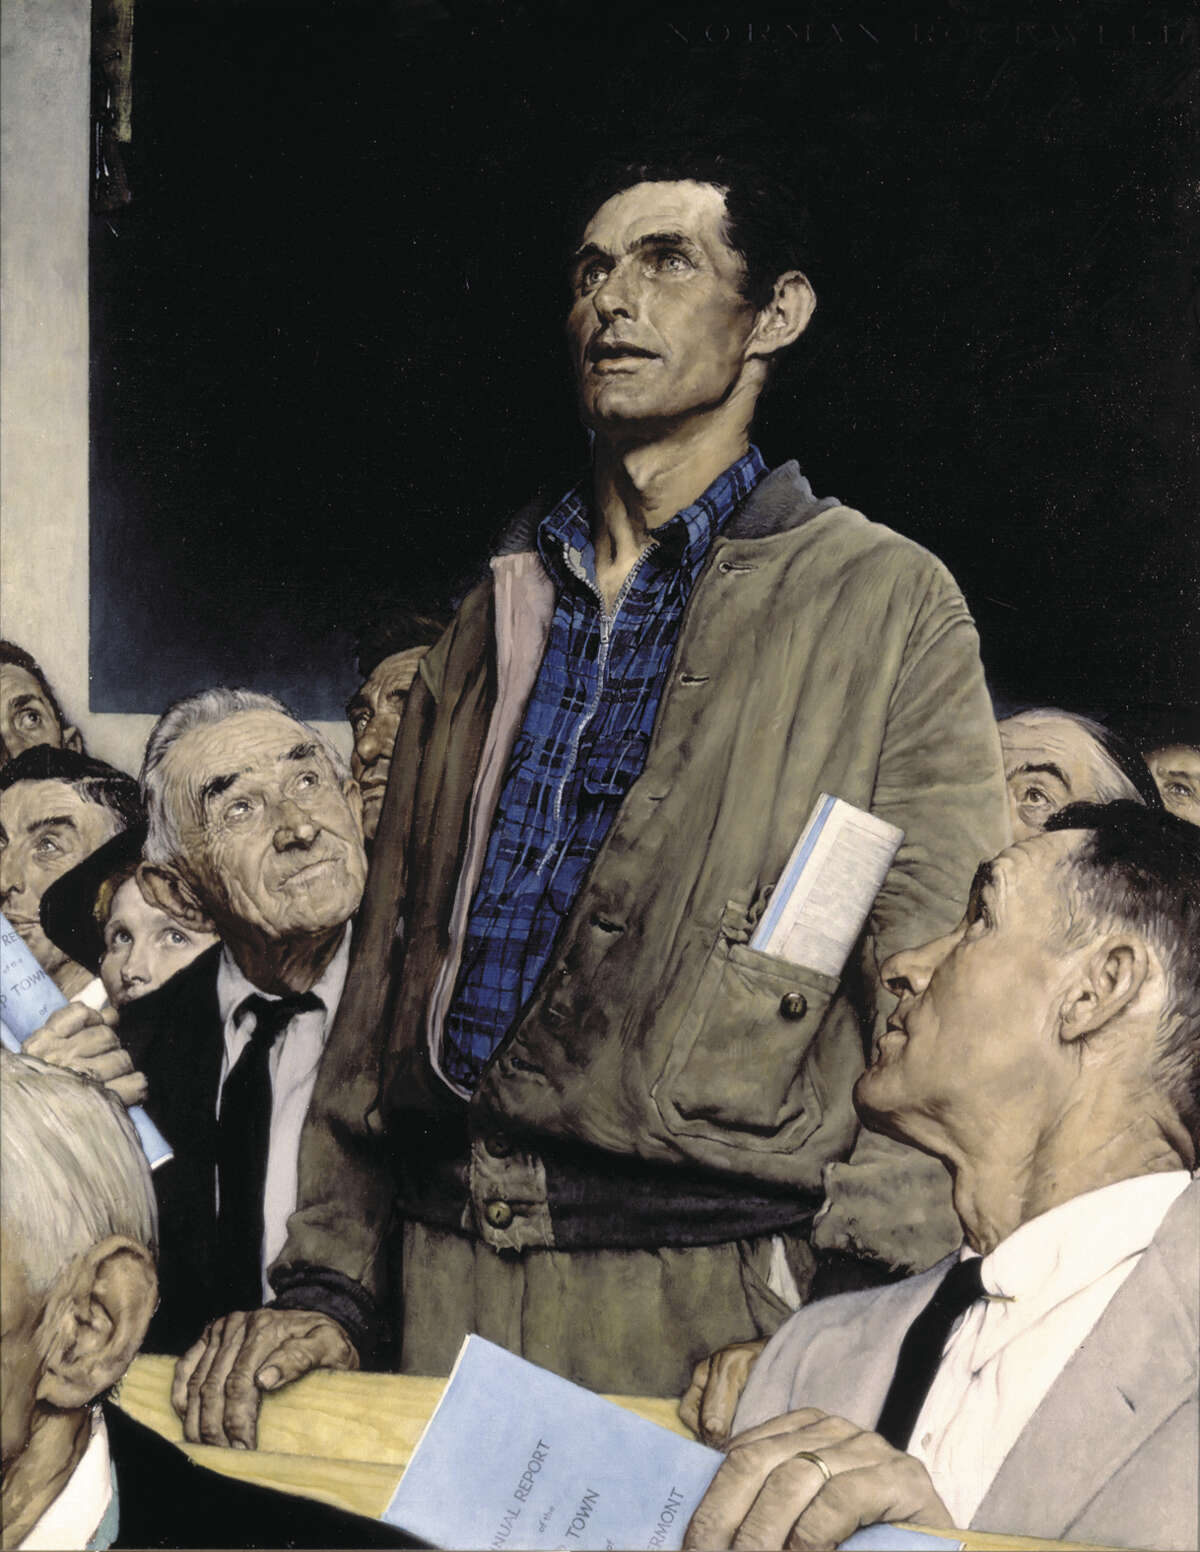 Freedom of Speech, Norman Rockwell Oil on canvas Saturday Evening Post, February 20, 1943 ?1943 SEPS: Licensed by Curtis Publishing, Indianapolis, IN Norman Rockwell Museum Collection